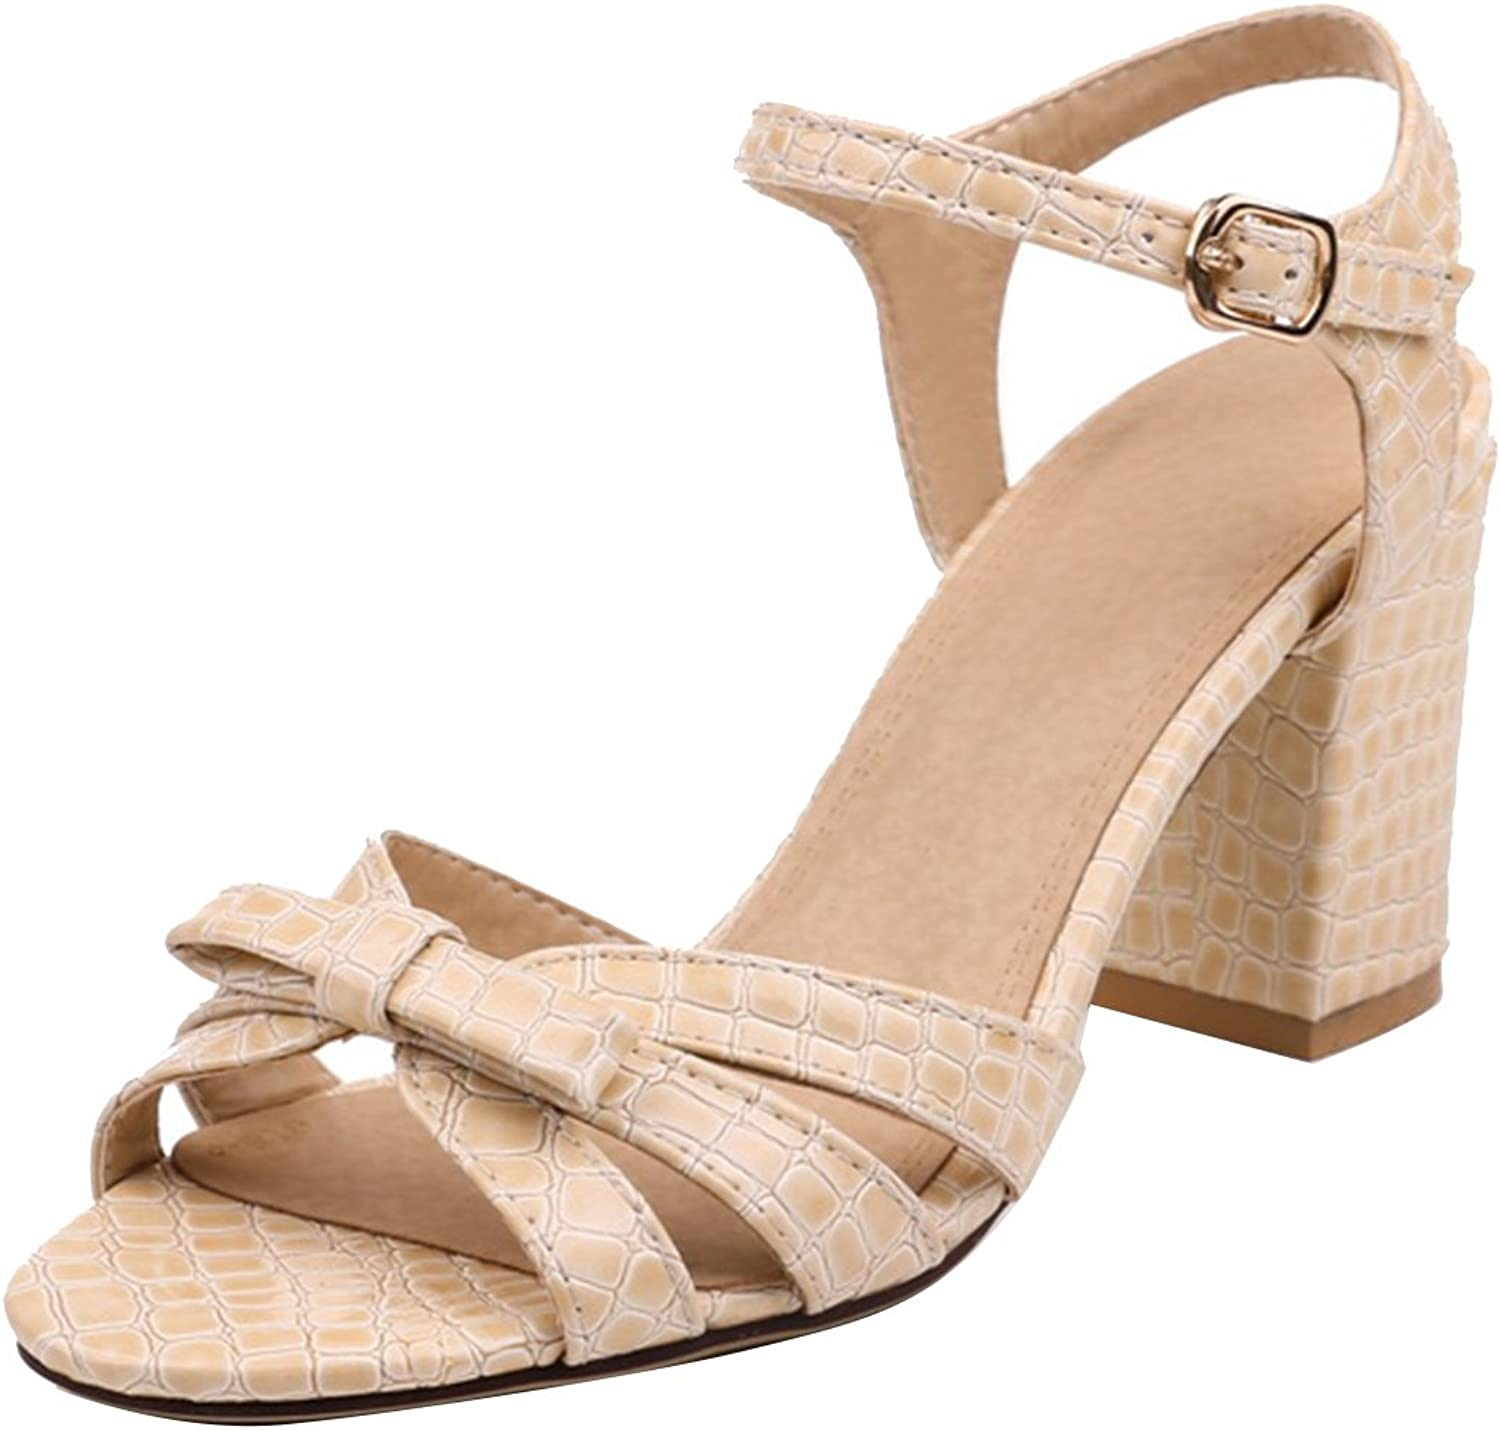 AIYOUMEI Women's Ankle Strap Open Toe Block Heel Sandals shoes with Bow